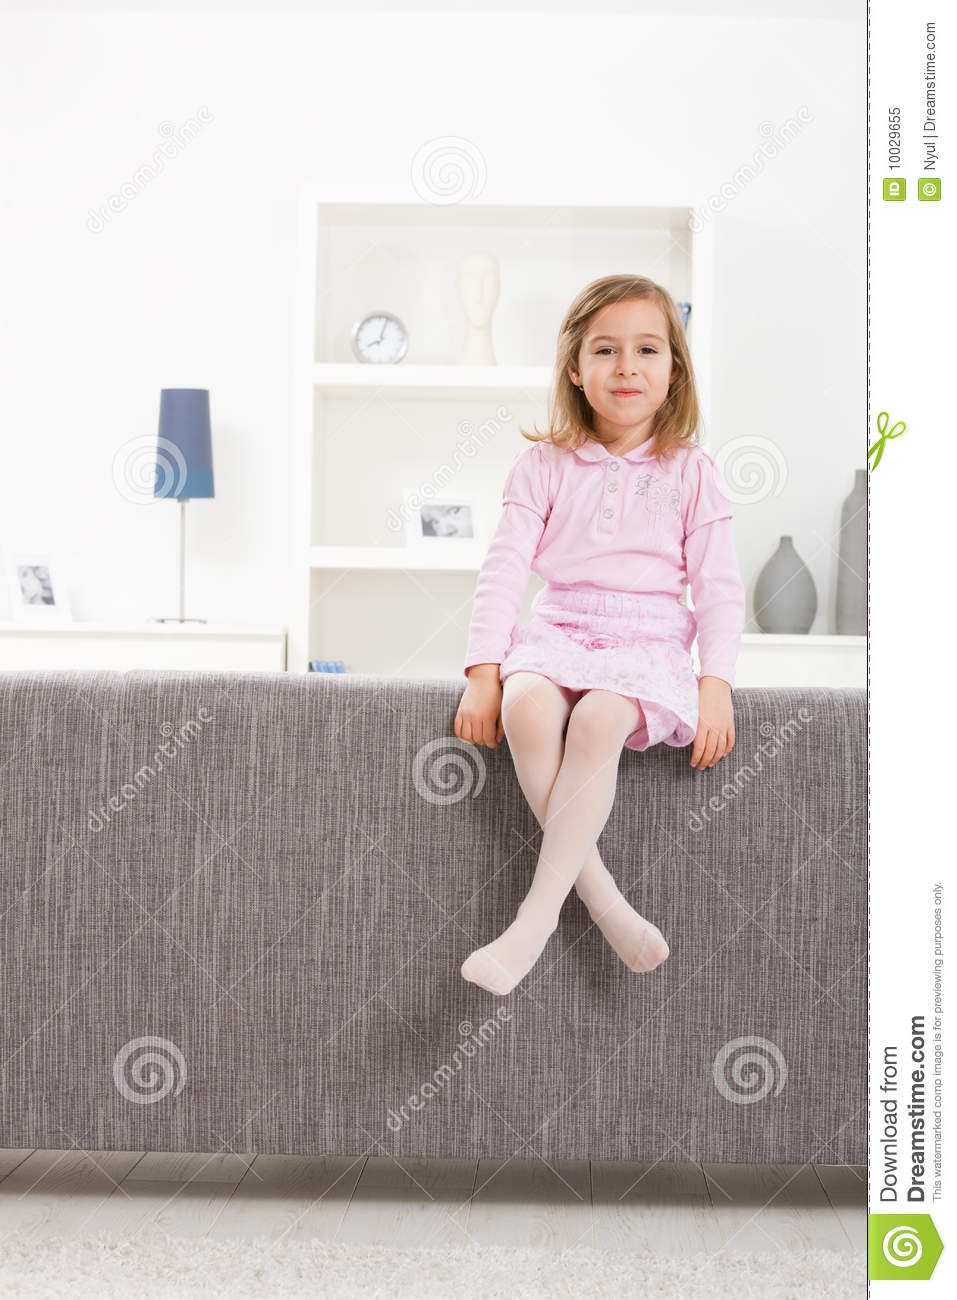 Girl In Pink Sitting On Couch Royalty Free Stock Photo